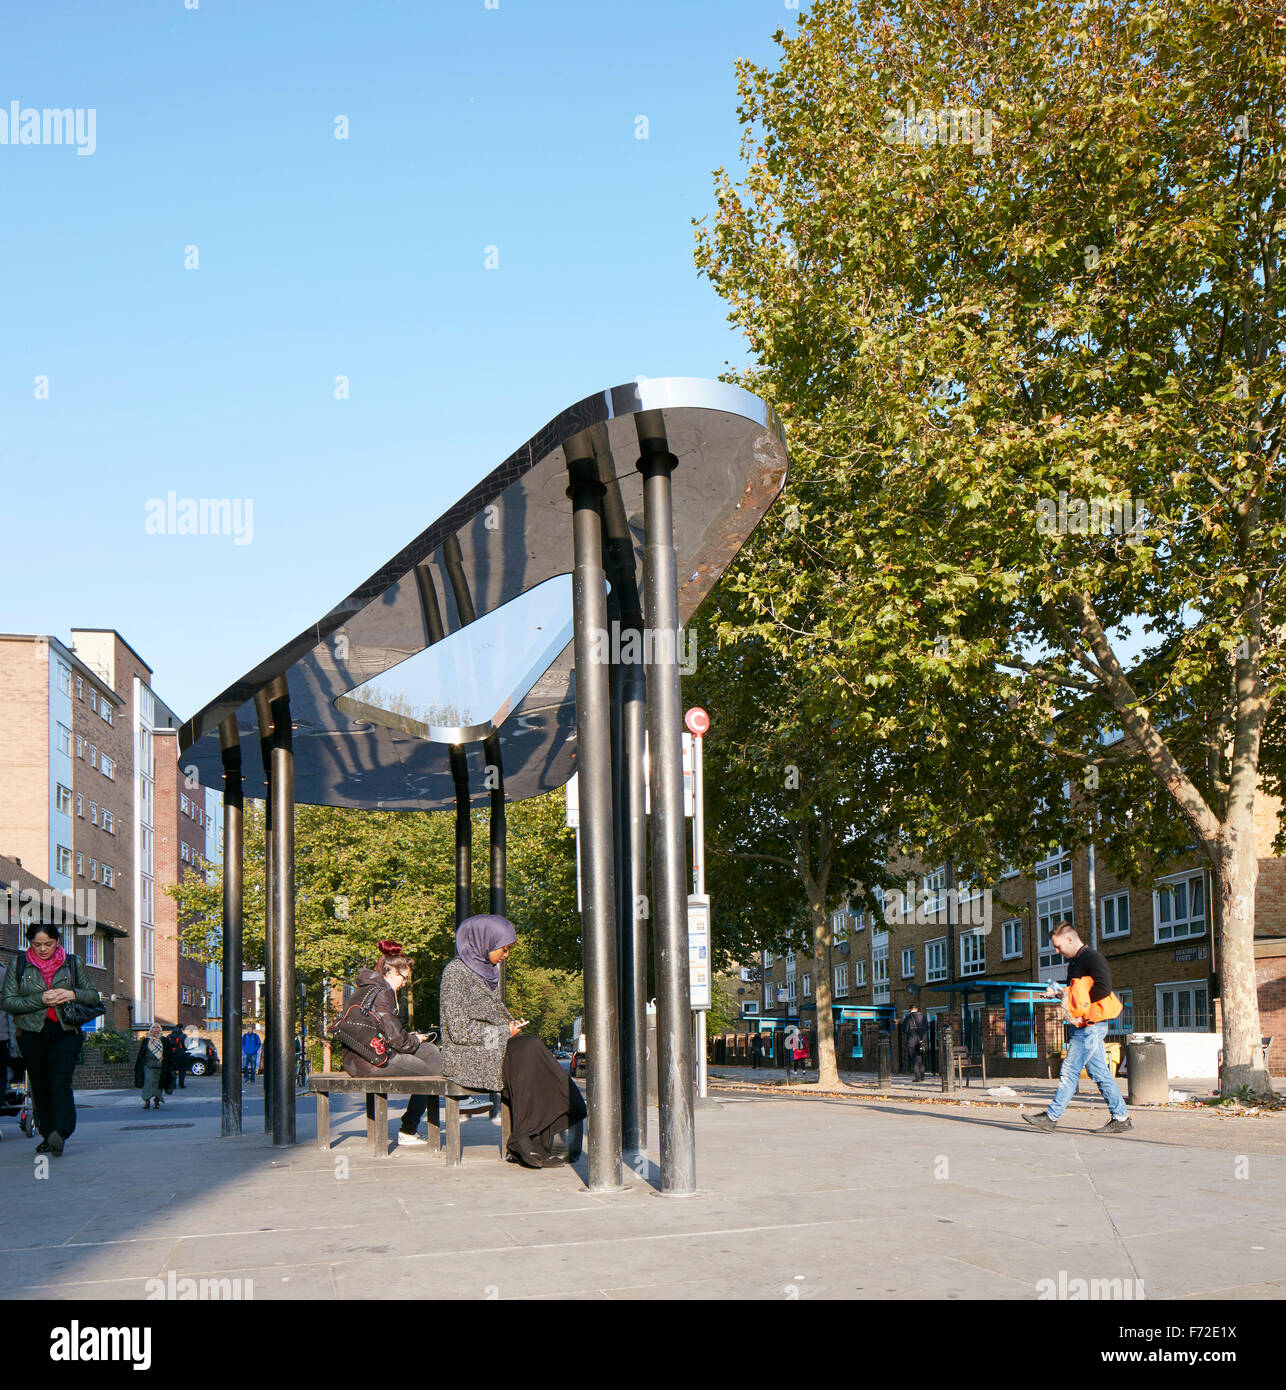 Pedestrianised area of Binfield Road with bus shelter. Binfield Road Bus Shelter, Stockwell Framework Masterplan, - Stock Image